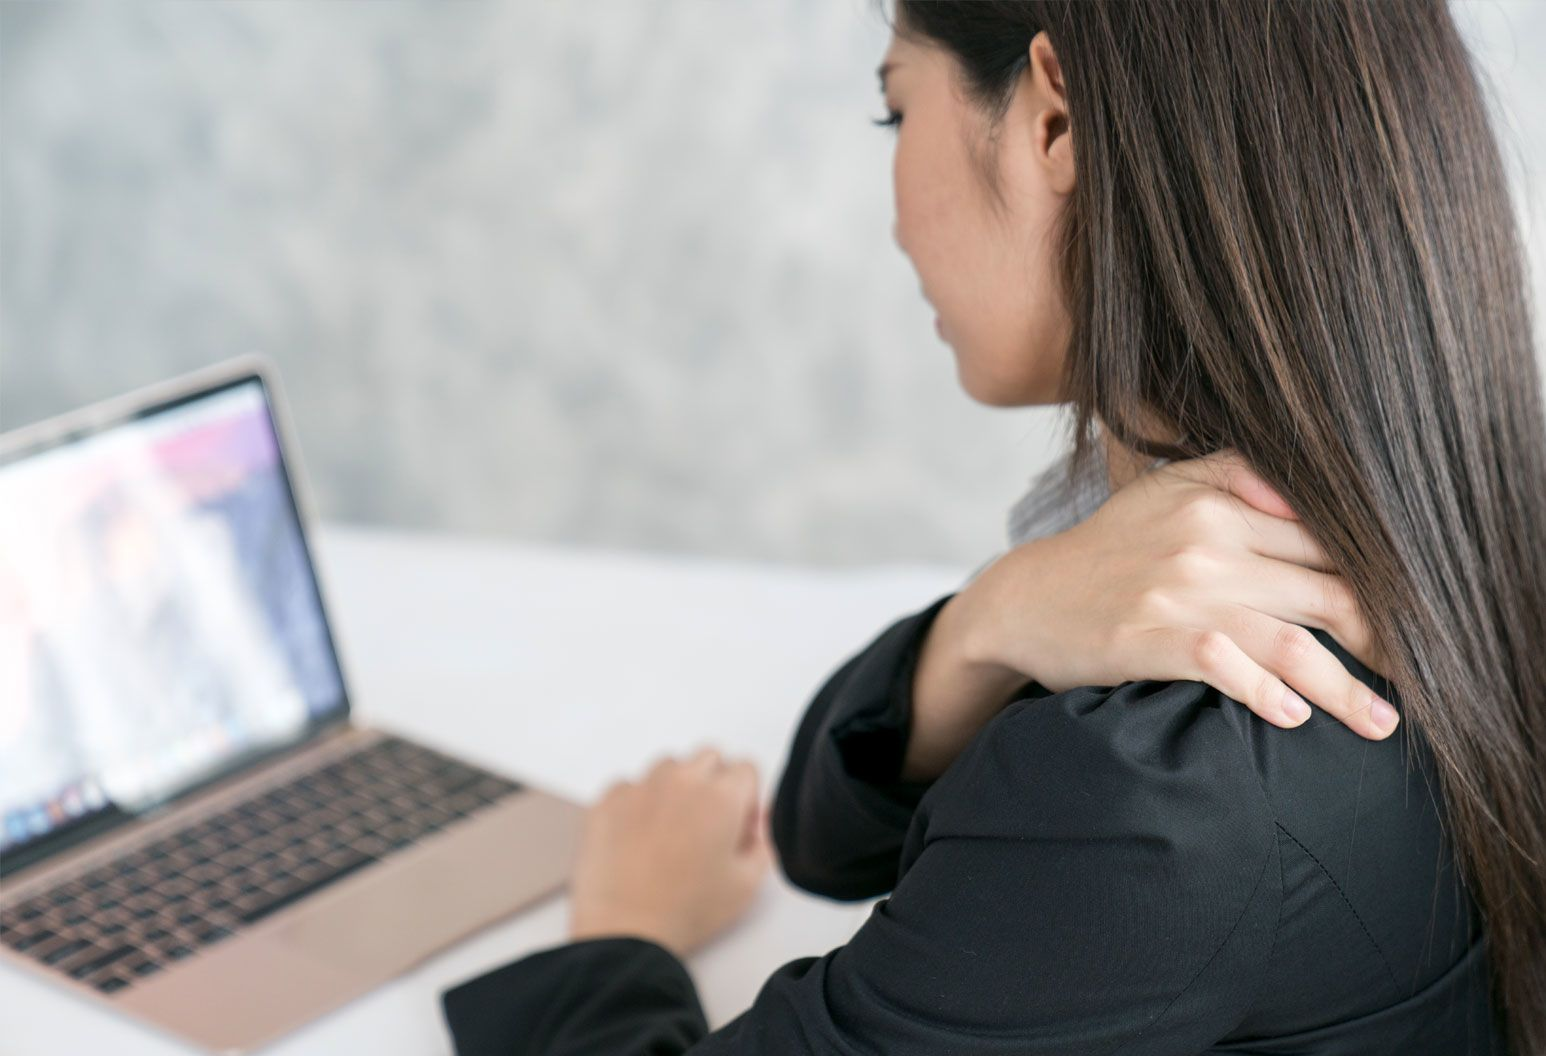 A young woman sits at a laptop and is holding her shoulder as if she is in pain. She's wearing a black shirt and has long brown hair.